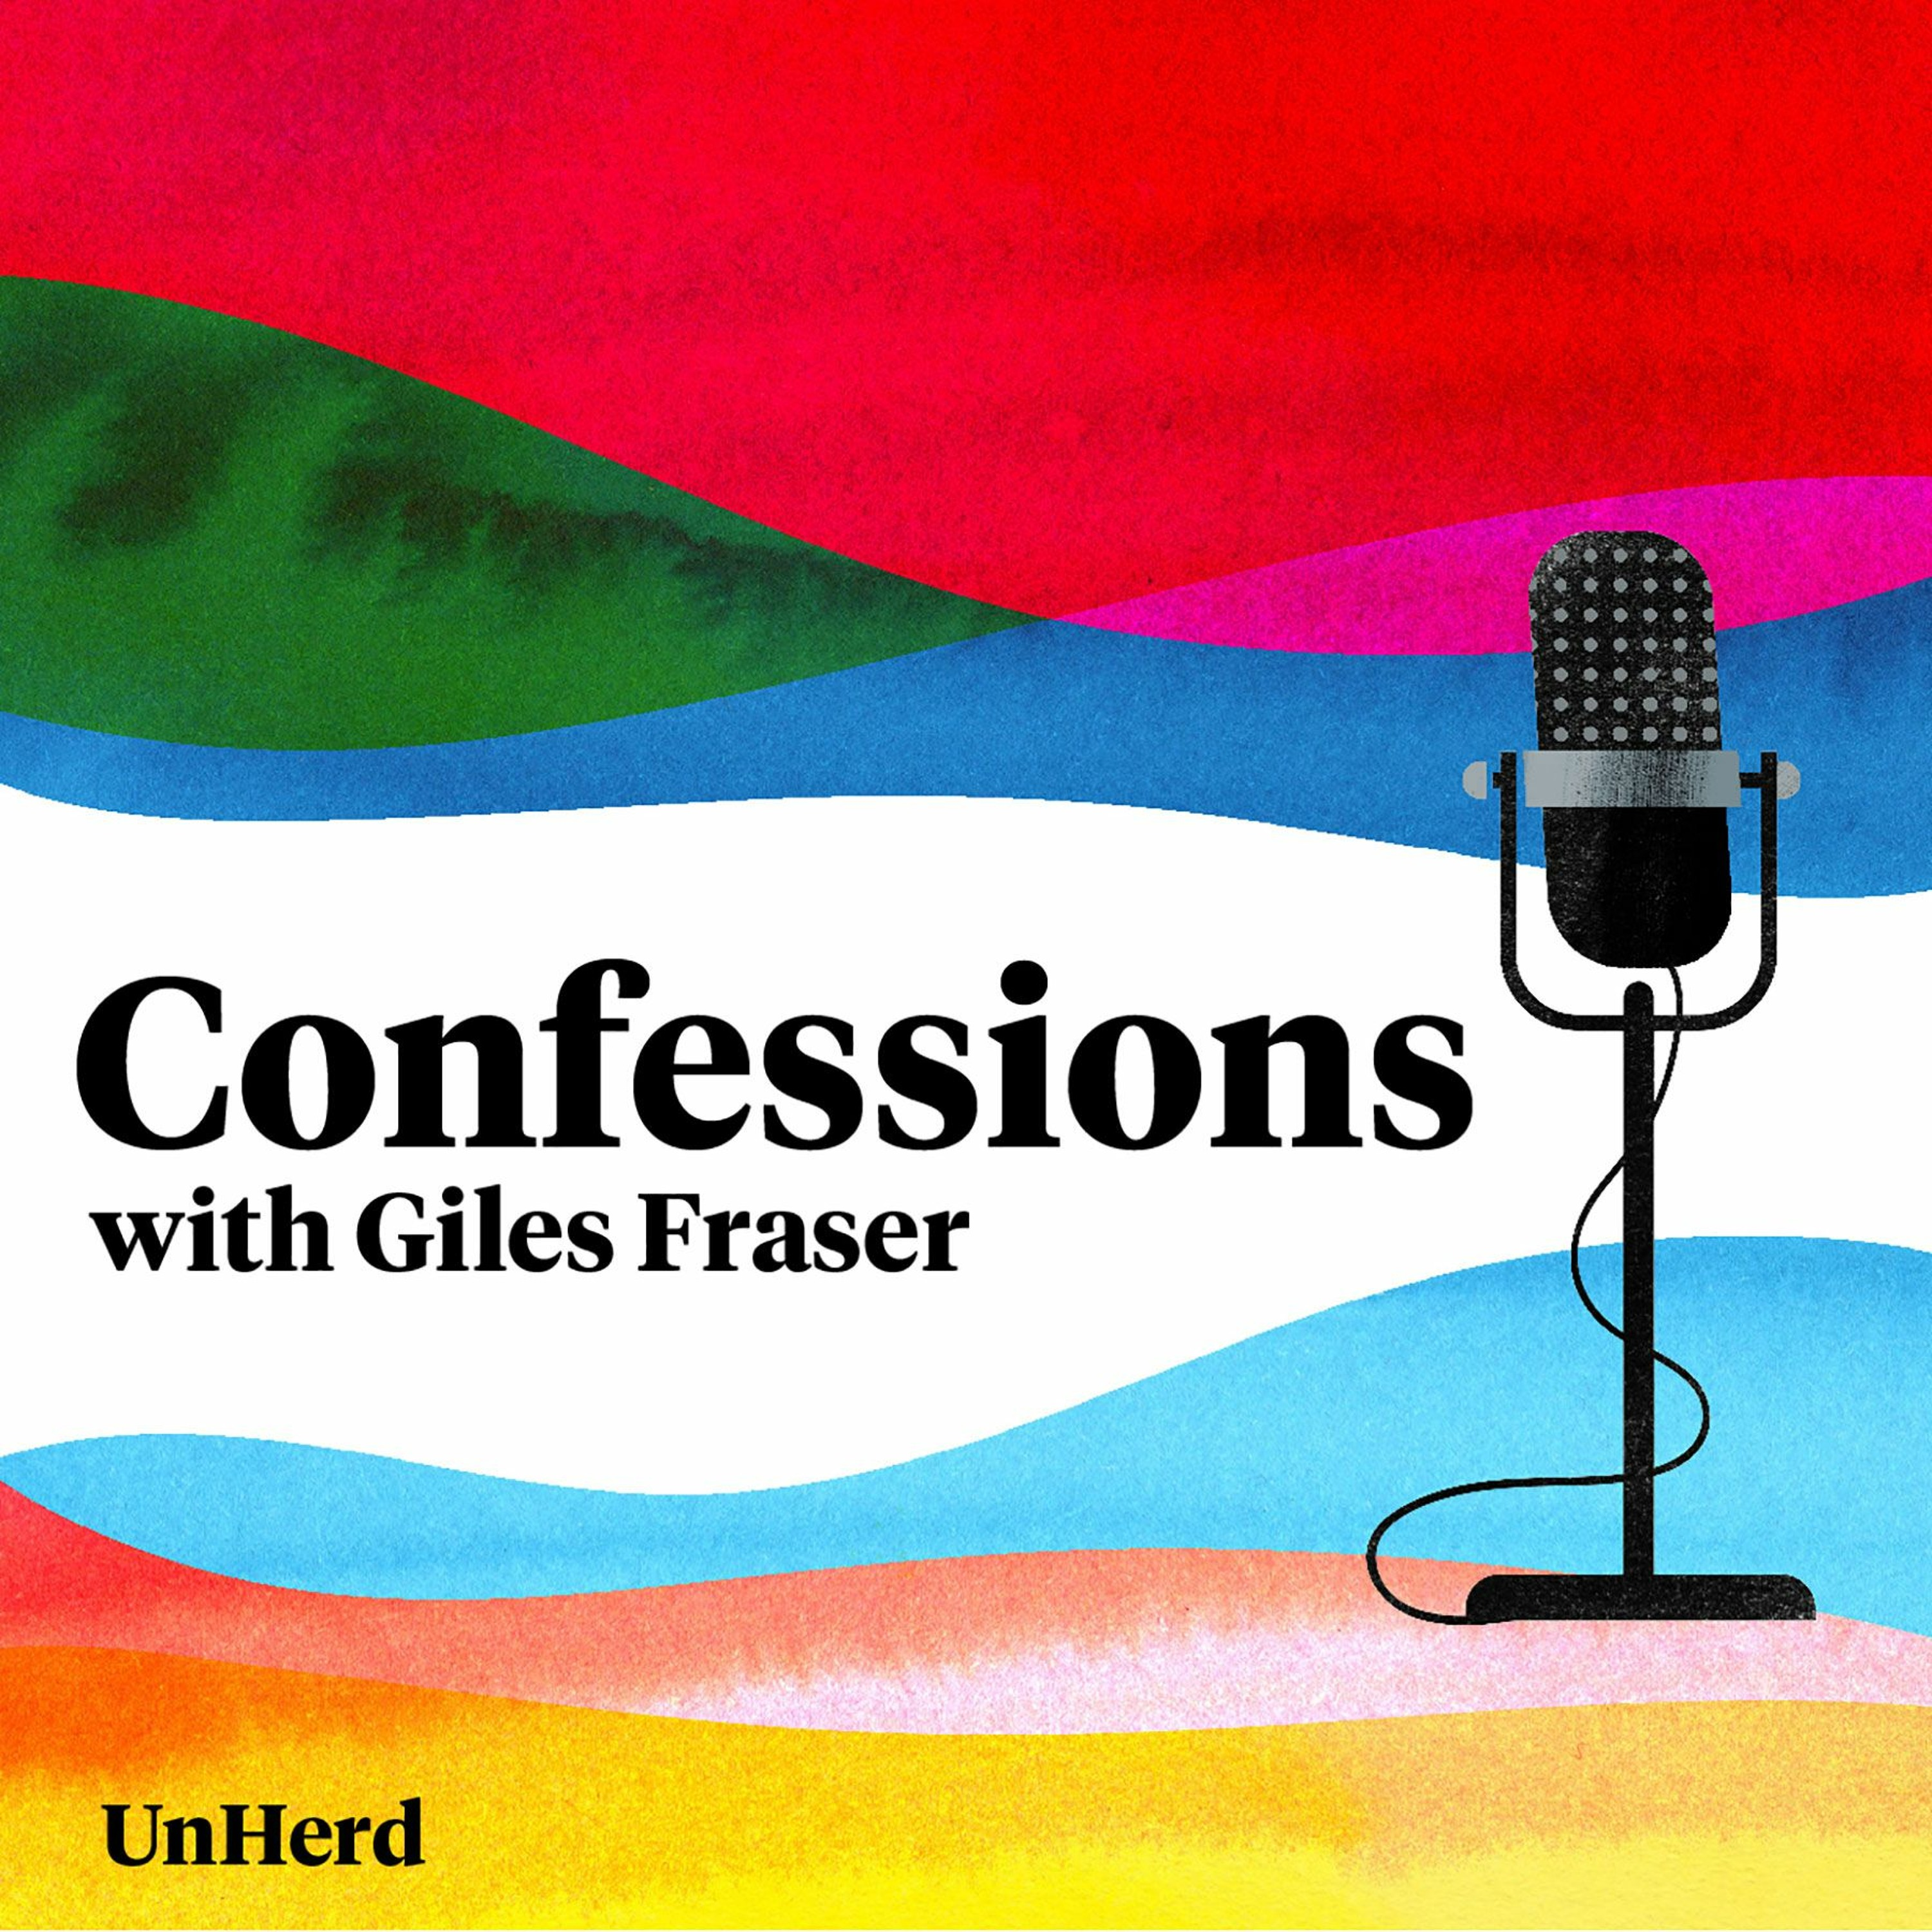 Andrew Sullivan's Confessions — Catholicism, coming out and Jeremy Corbyn